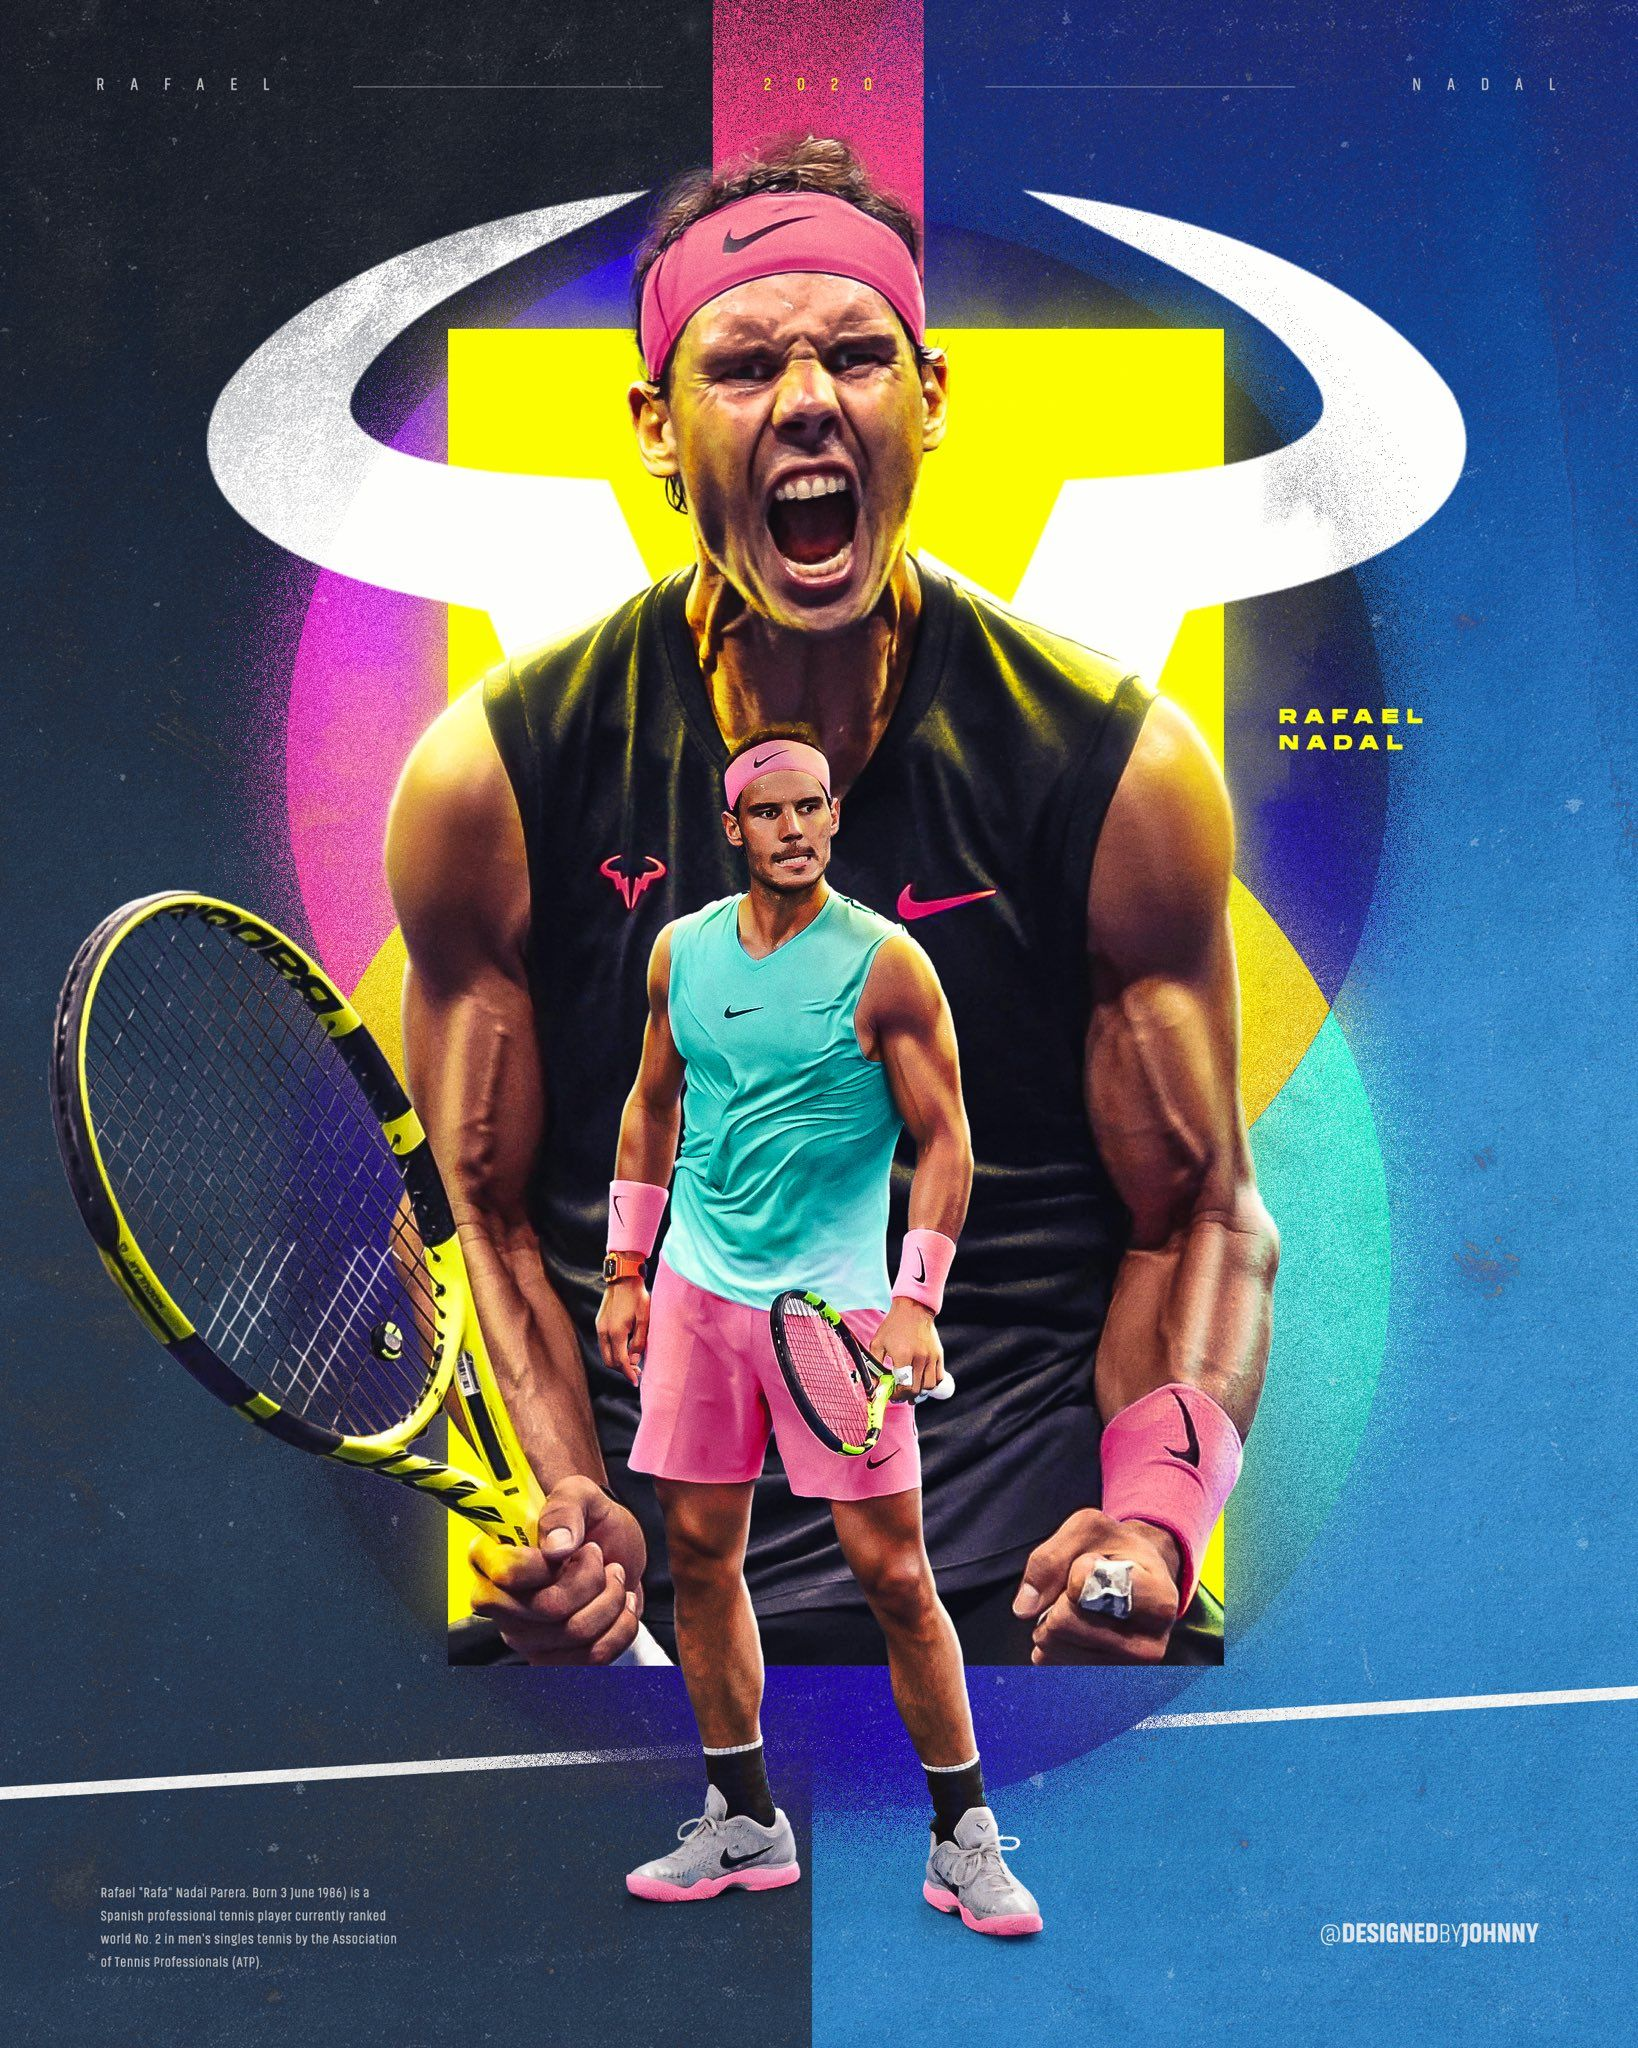 440 Nadal Ideas In 2021 Rafael Nadal Rafa Nadal Tennis Players